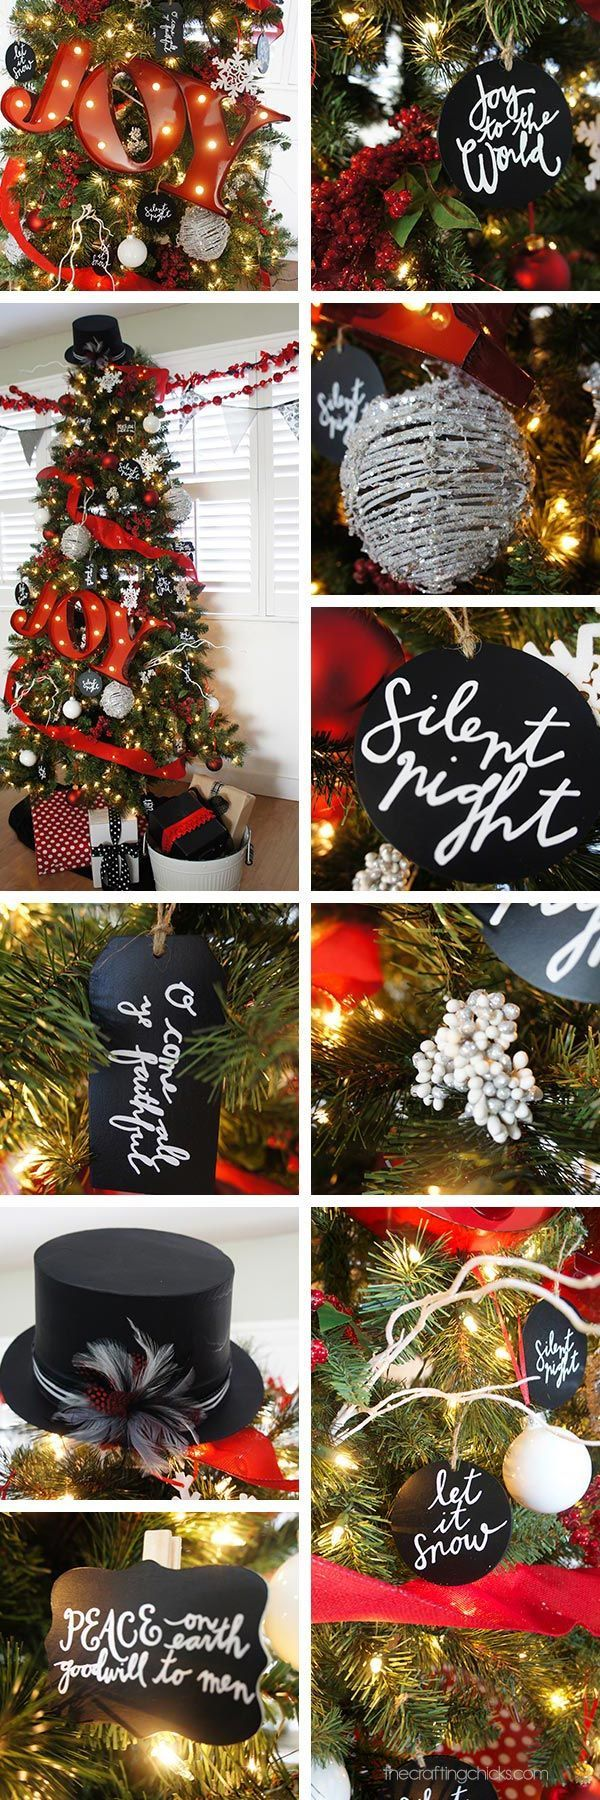 Red White And Black Michaels Dream Tree Reveal Christmas Themes